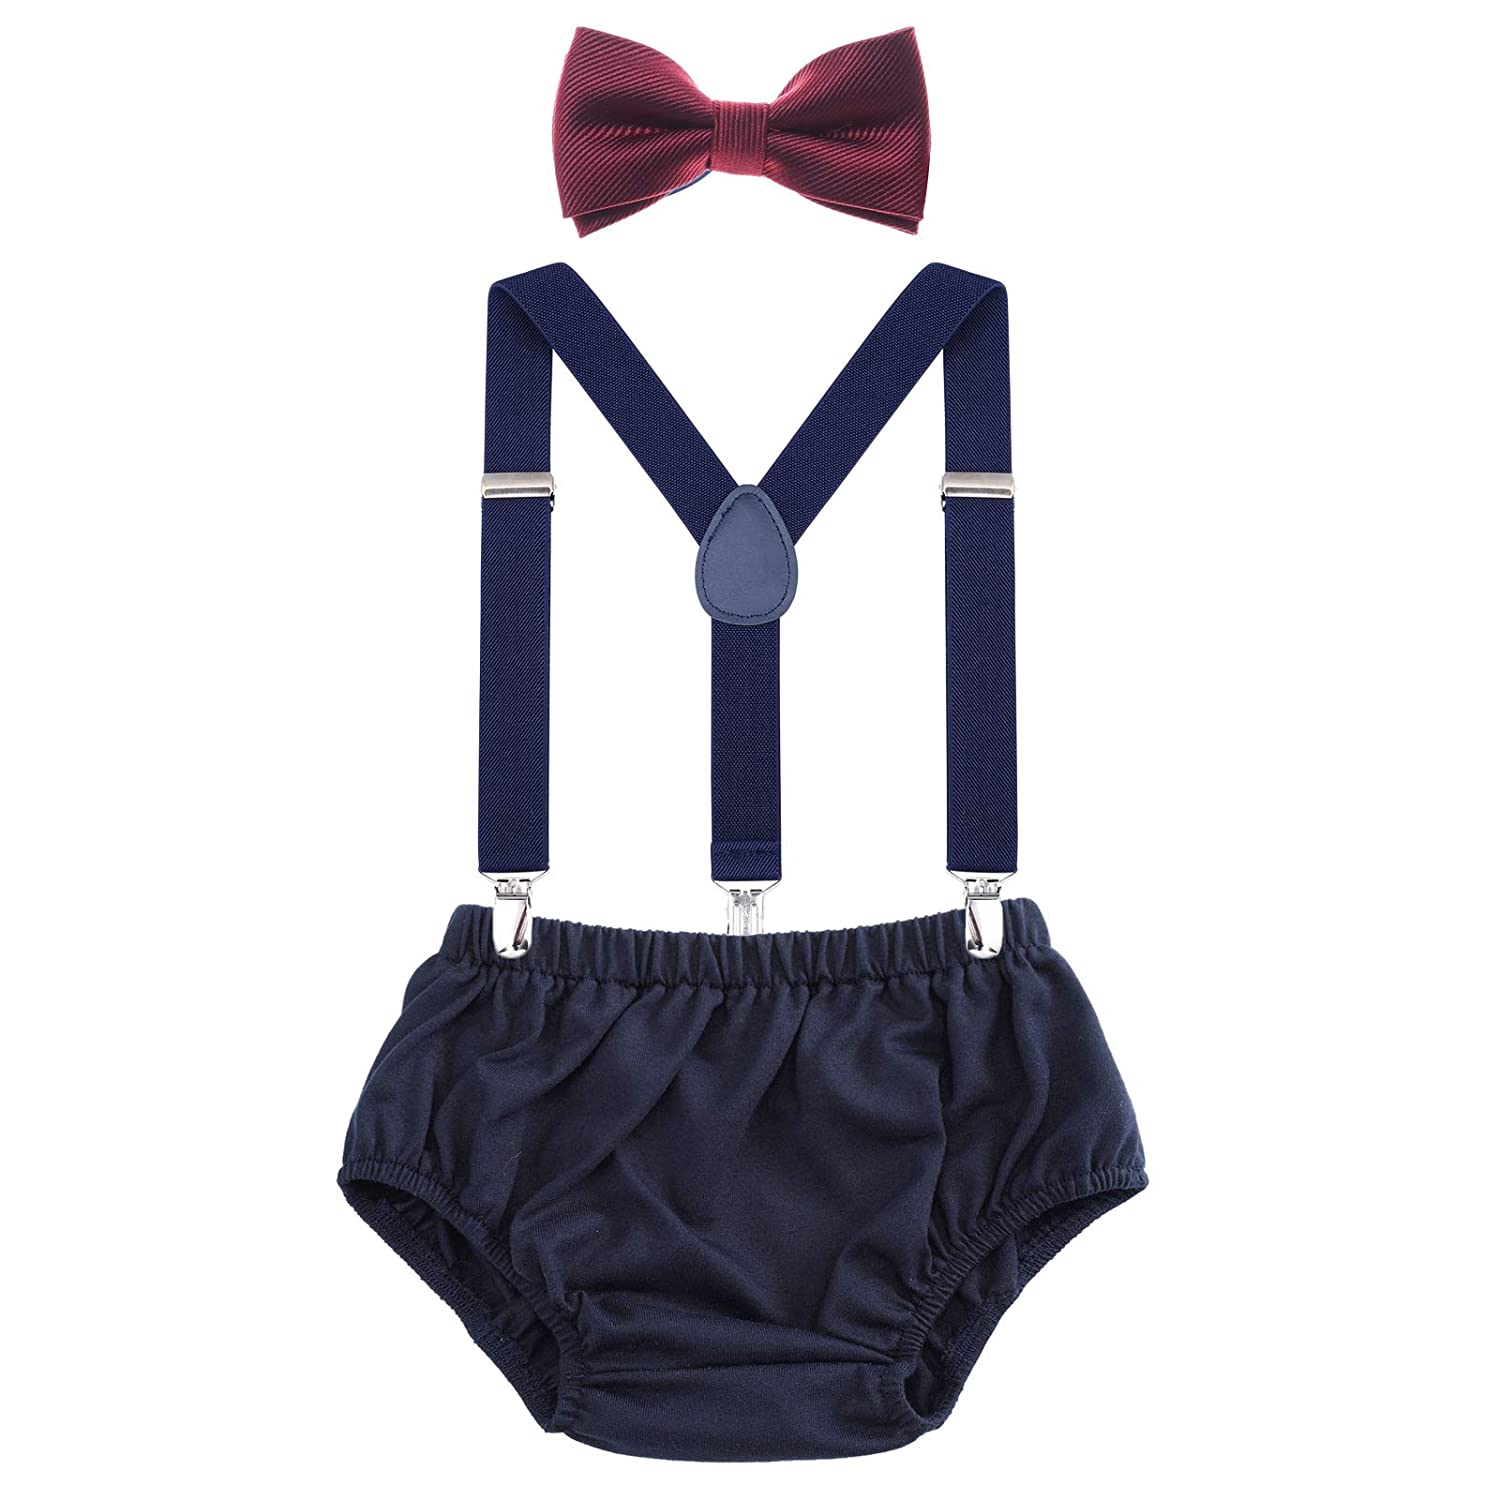 Yellow+Navy AWAYTR Toddler Boys Cake Smash Outfit First Birthday Party Christmas Elastic Suspenders Bowtie Bloomers Set